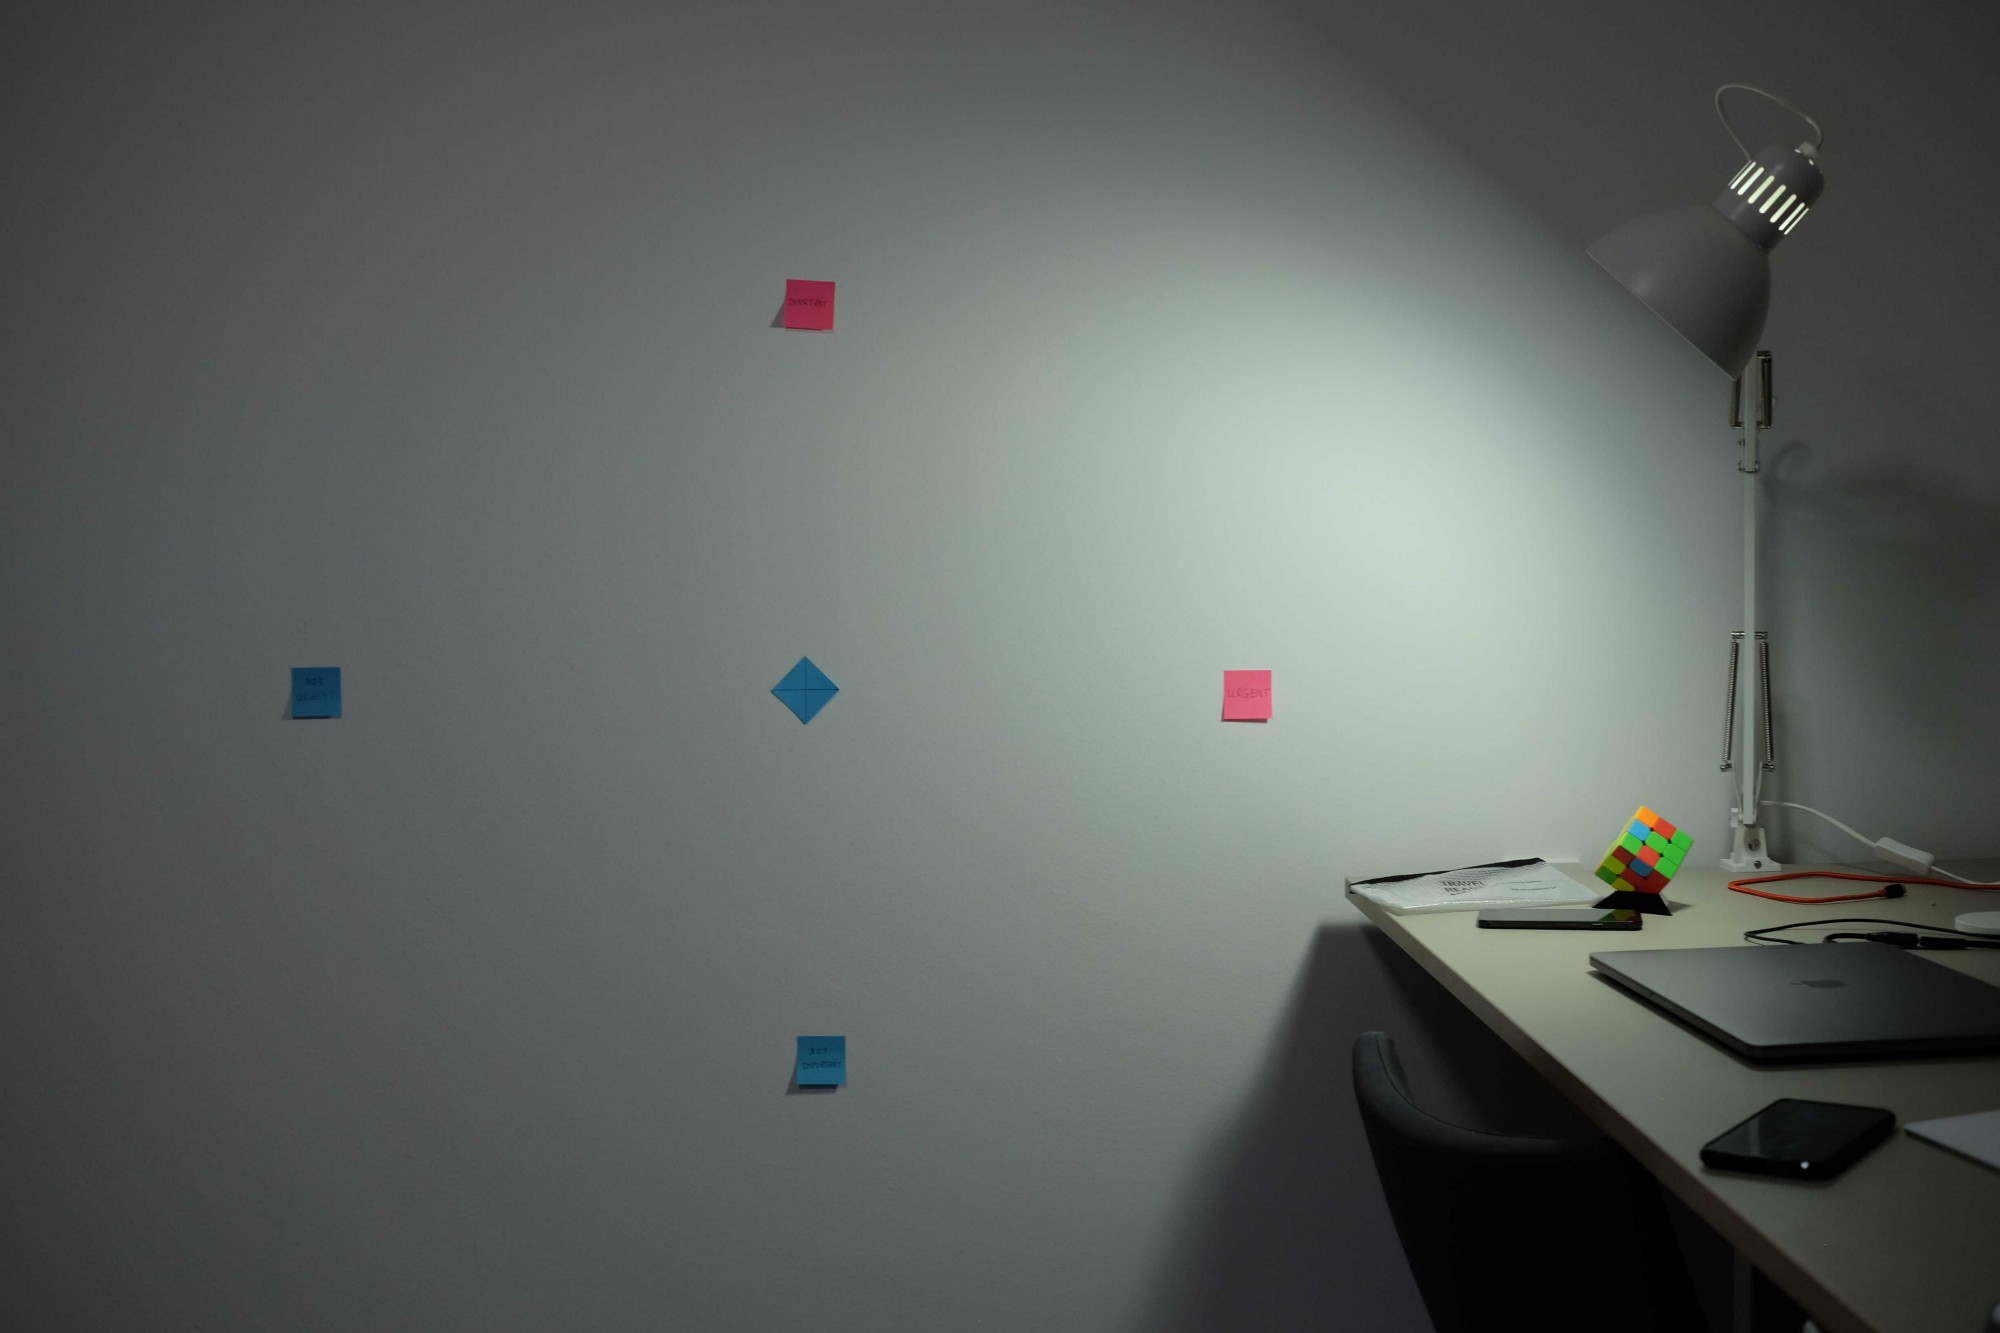 An image of my wall with 5 post-it notes creating a grid, 2 for x-axis, 2 for y-axis, and 1 in the middle